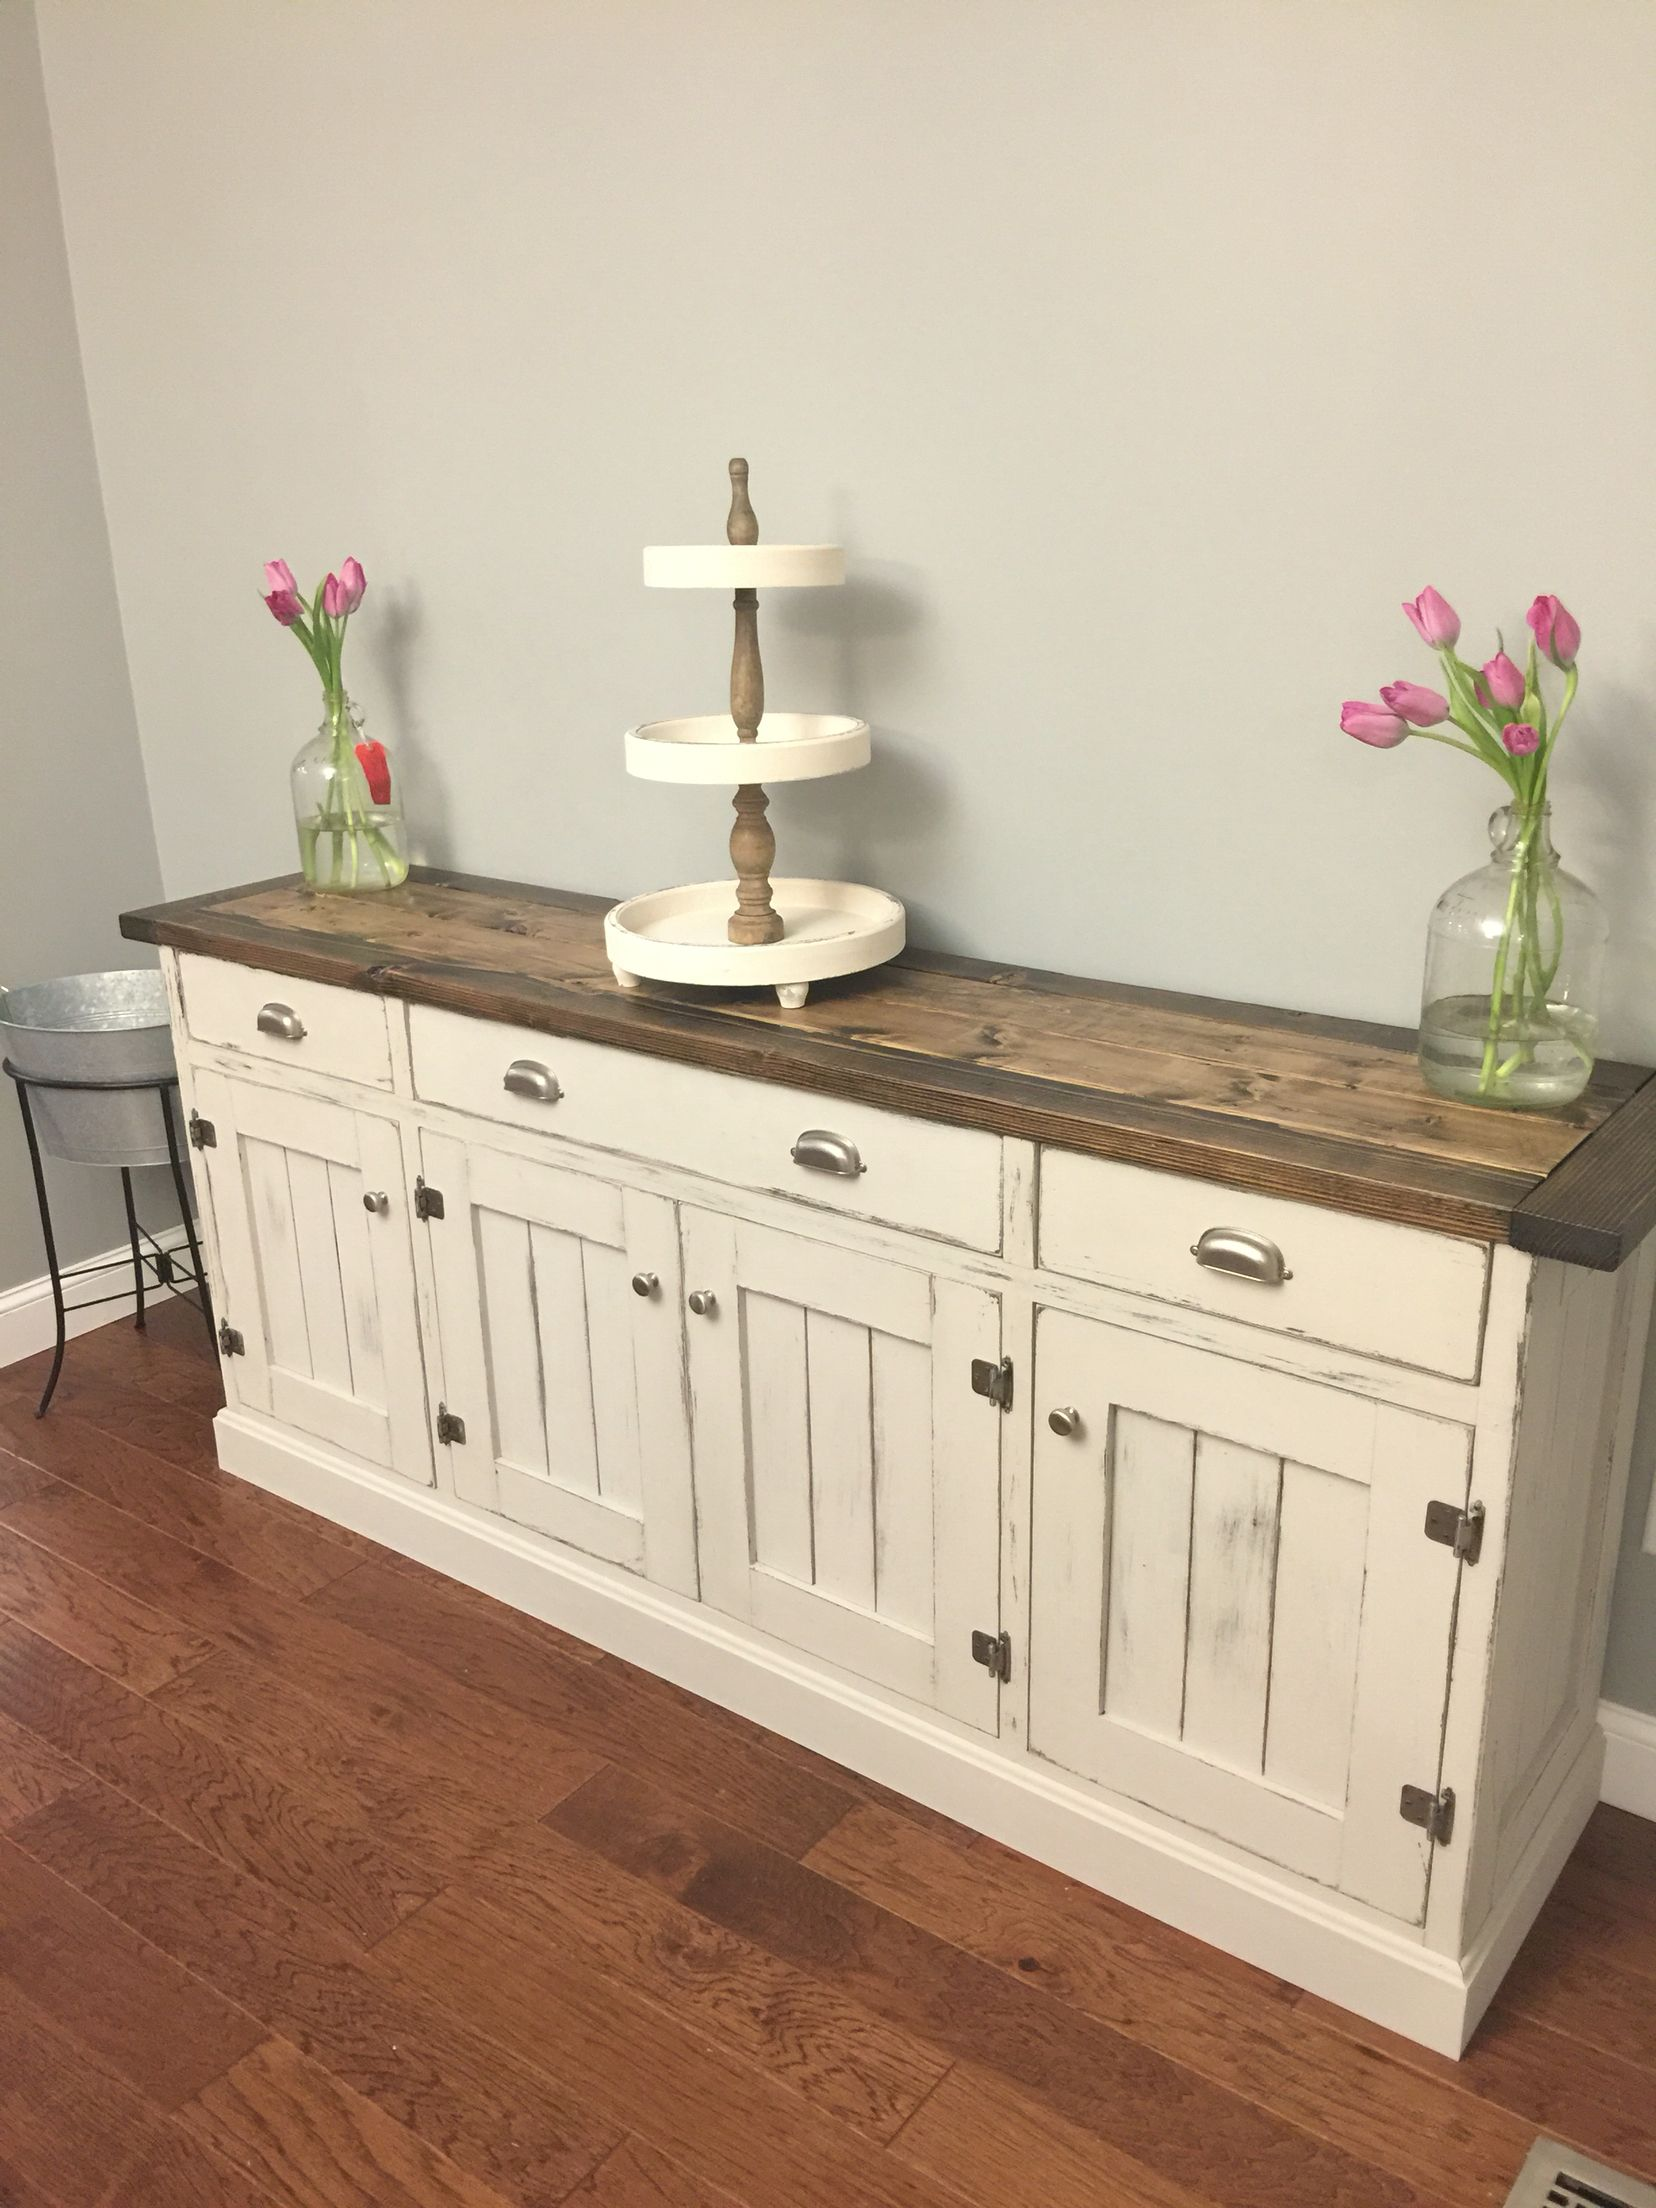 rustic dining room buffet table farmhouse style buffets hammer dining room buffet so pretty love the two tone finish rustic planked wood sideboard anna